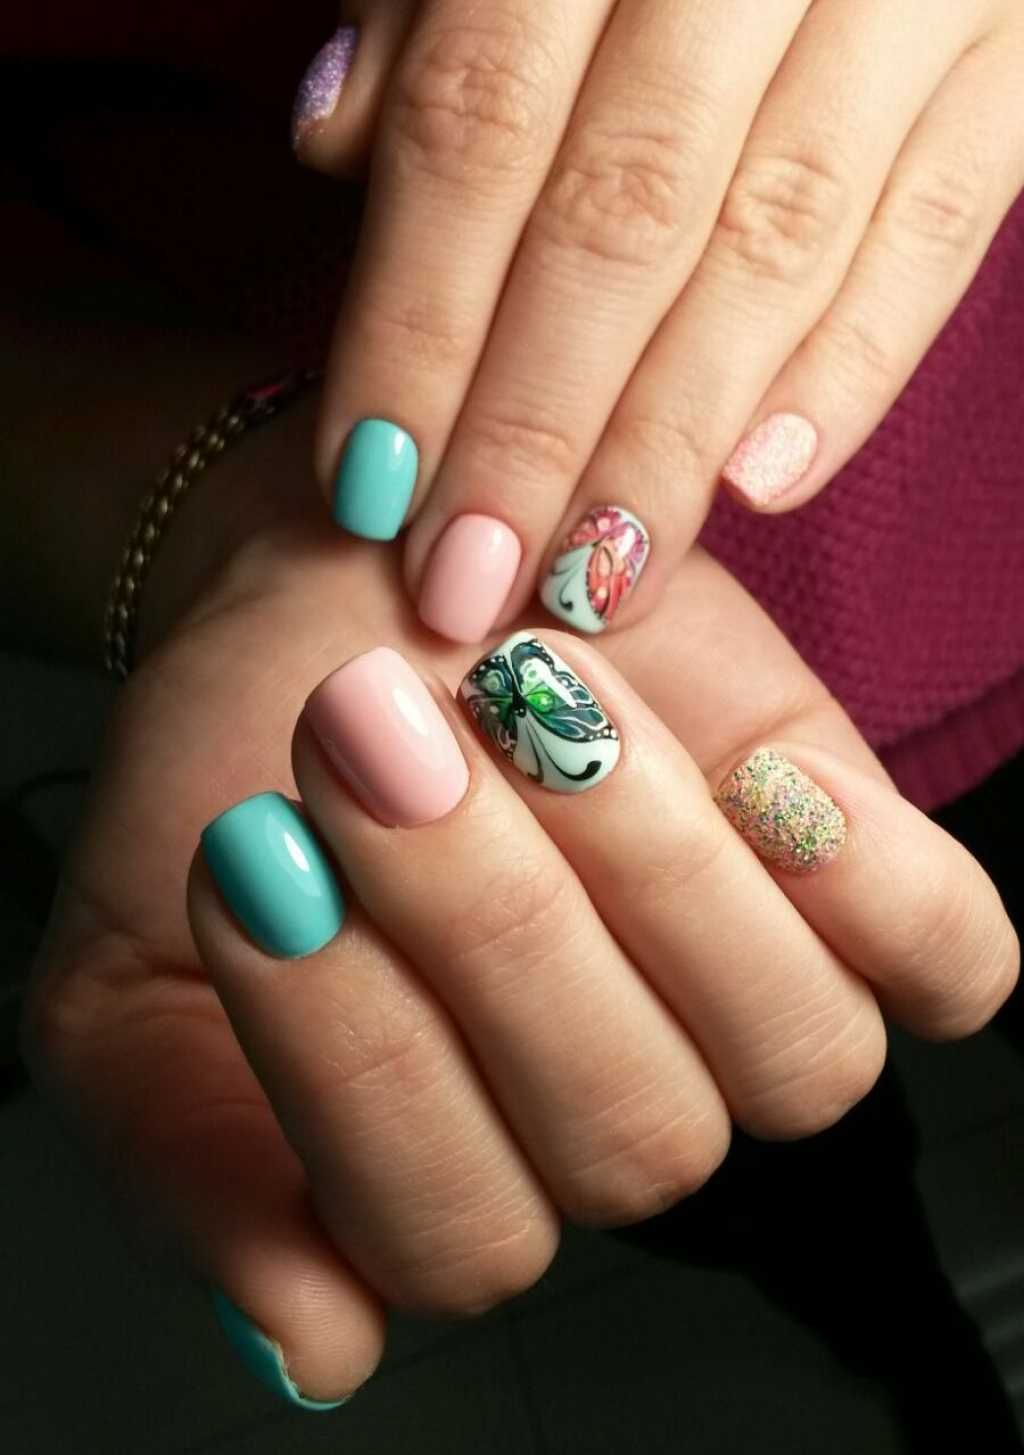 Extraordinary Nail Design With Butterflies One1lady Nail